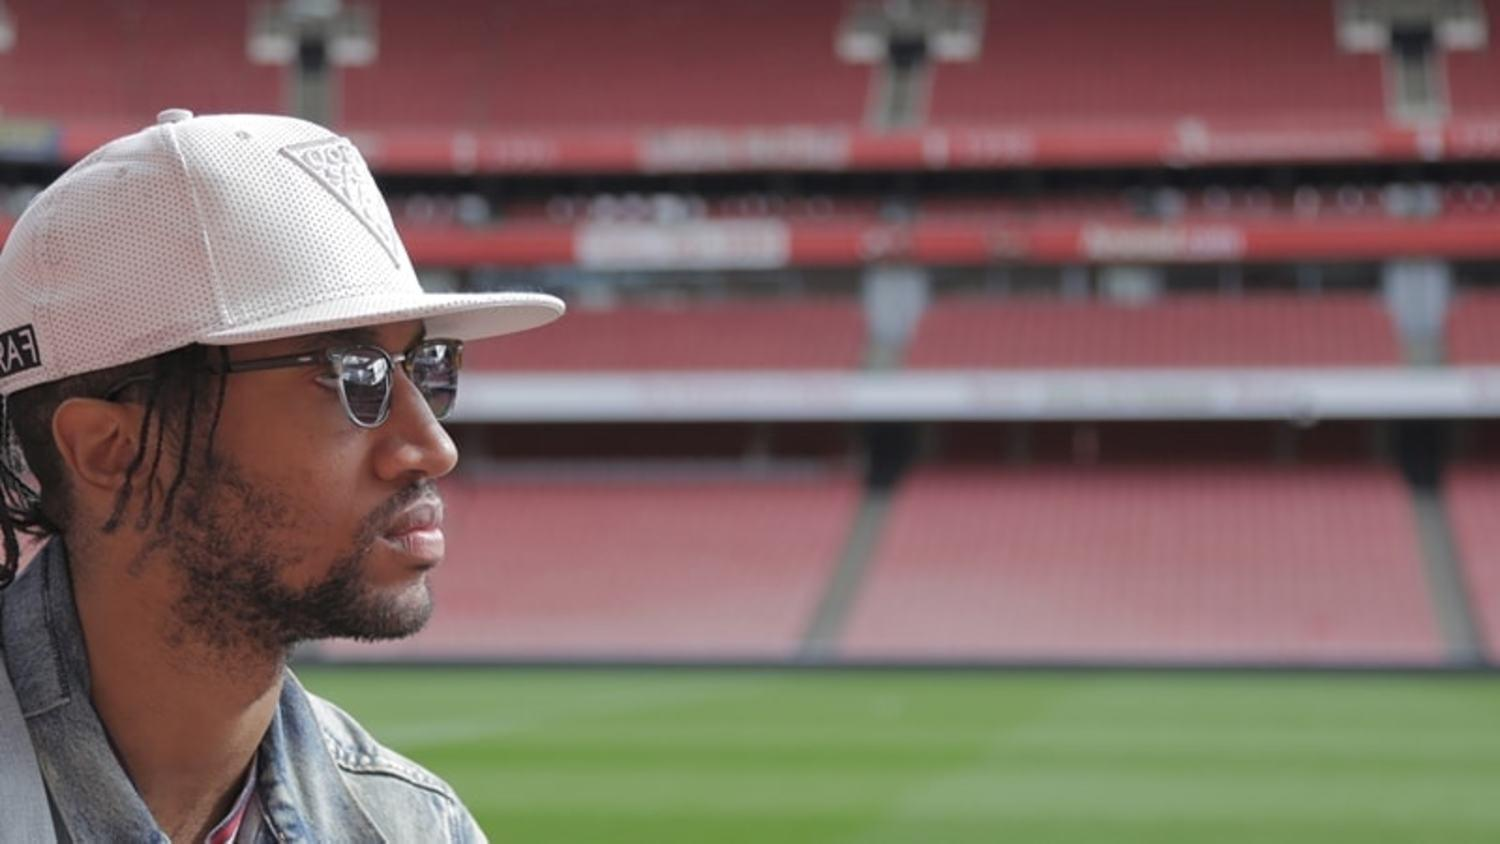 Poet is one of the establishing members of the new group which will promote the FA Cup / FA